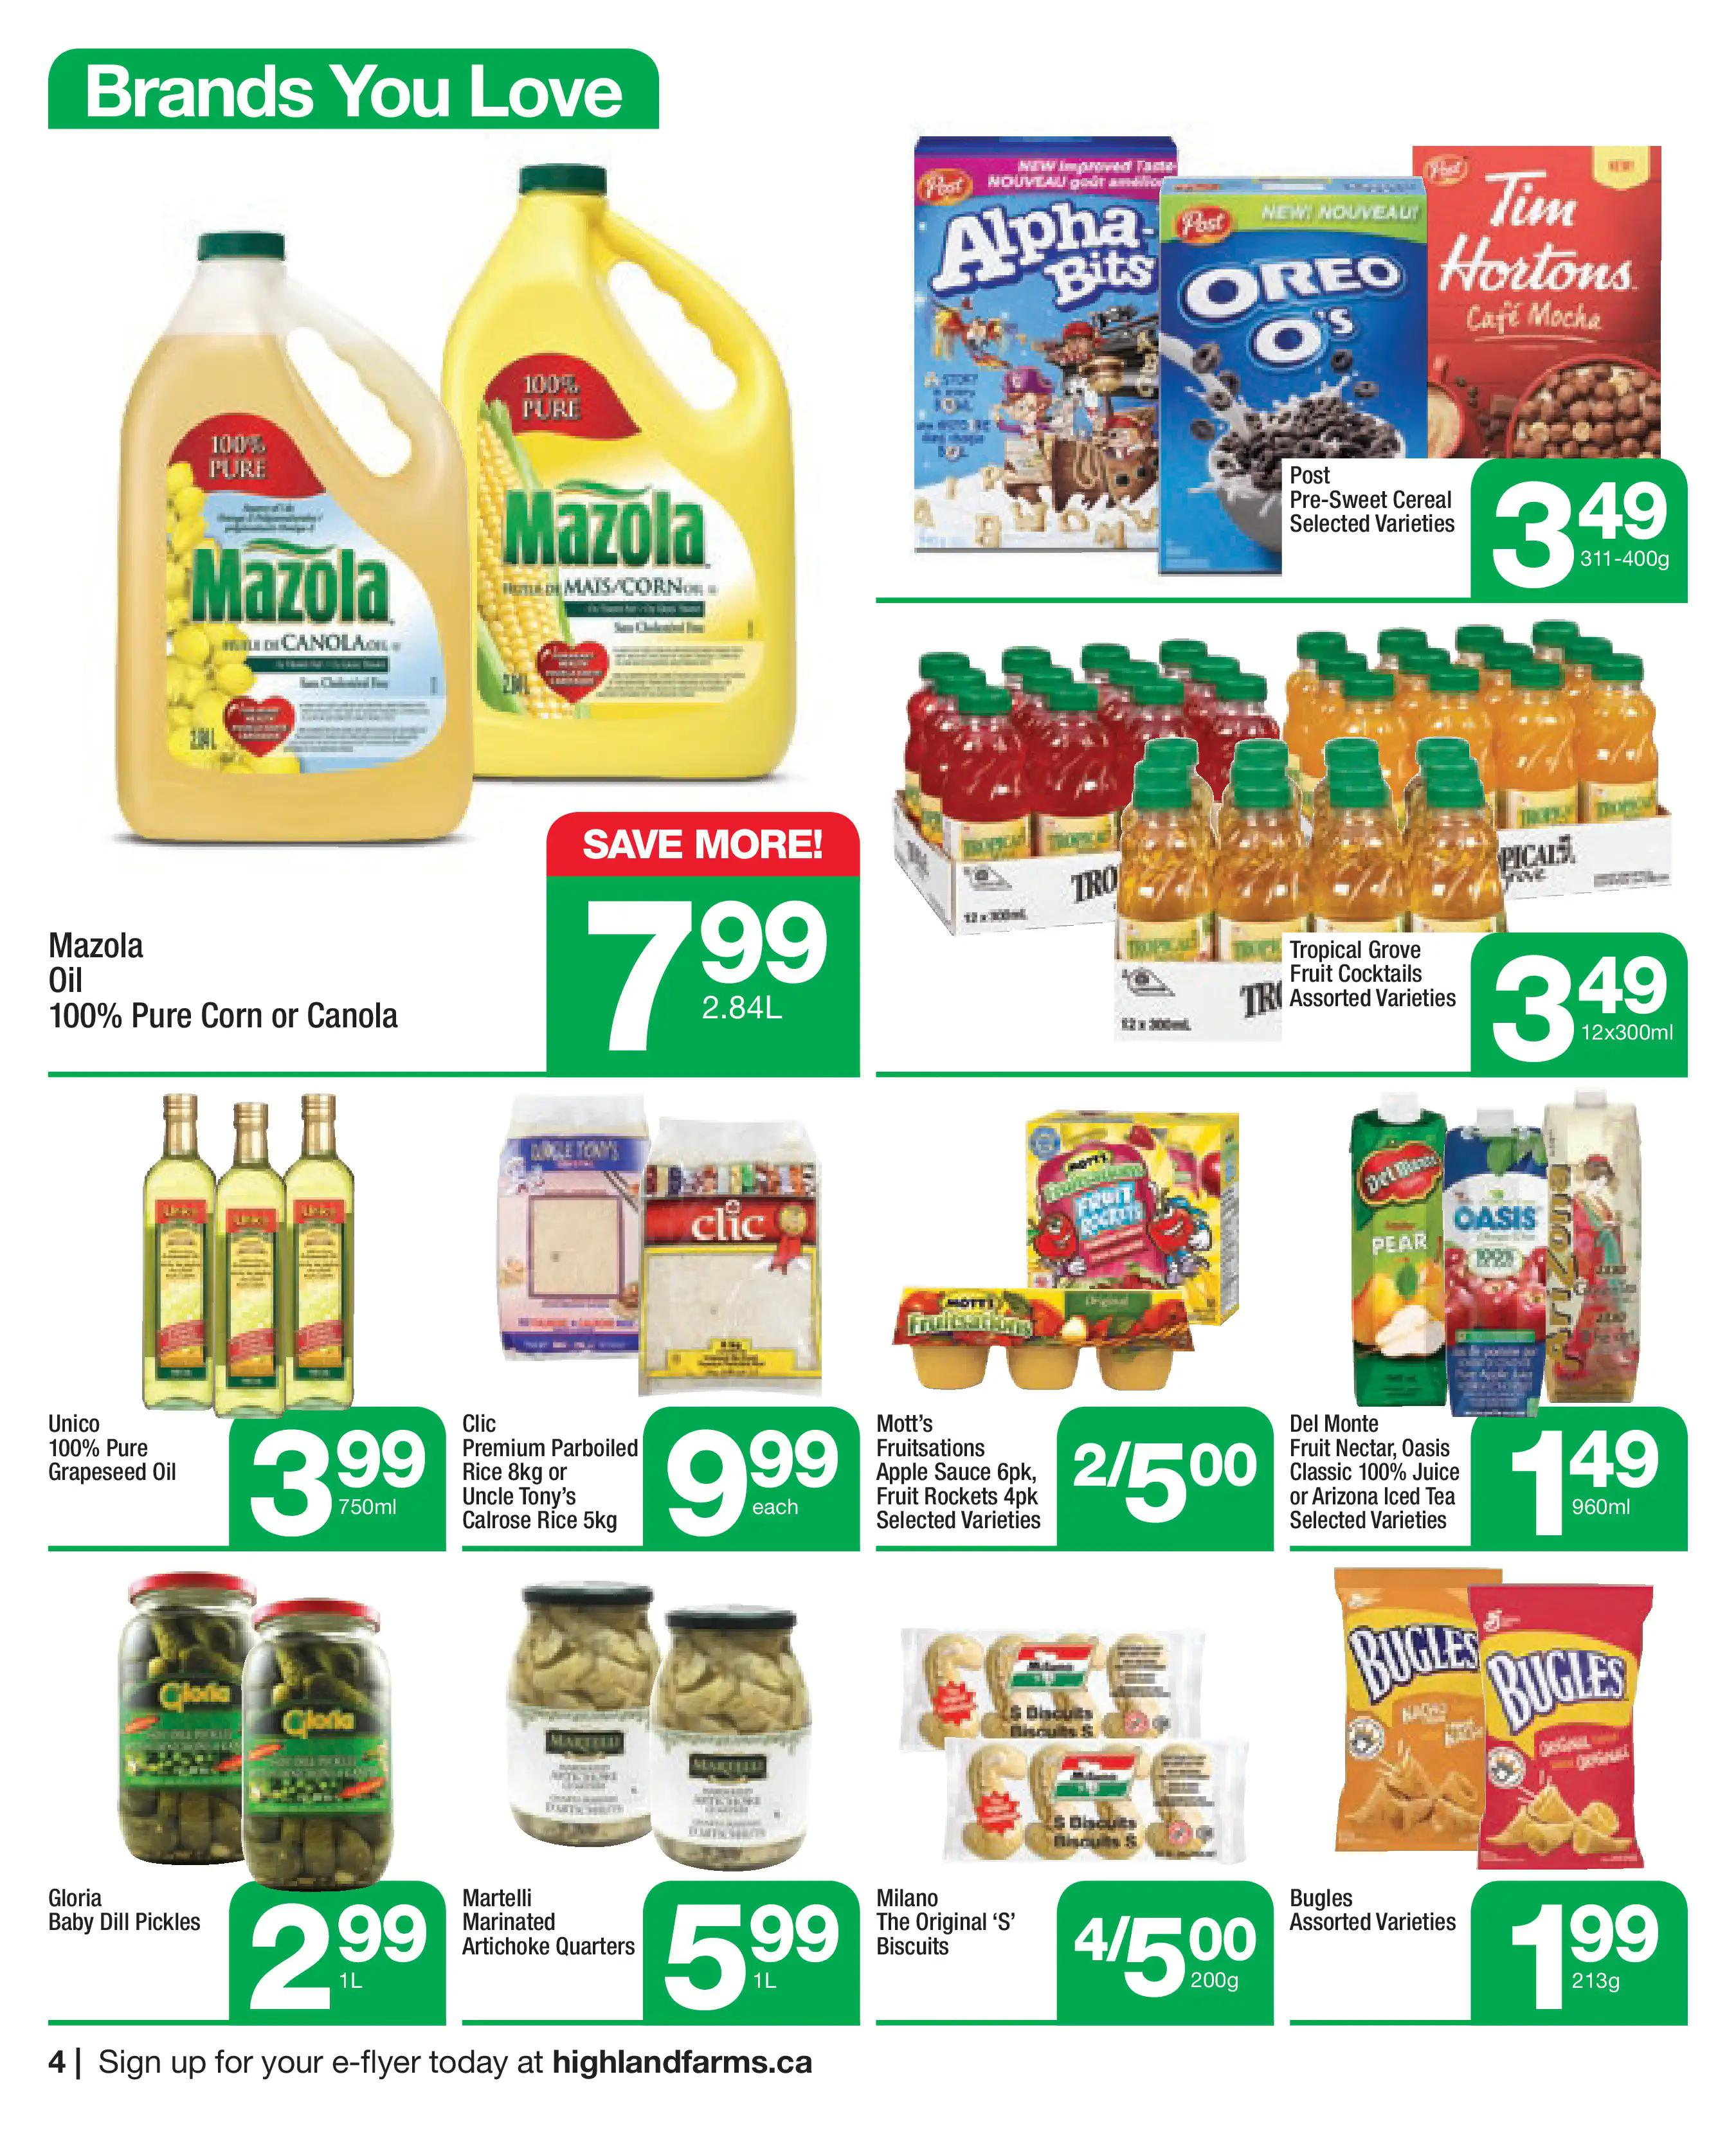 Highland Farms - Weekly Flyer Specials - Page 4